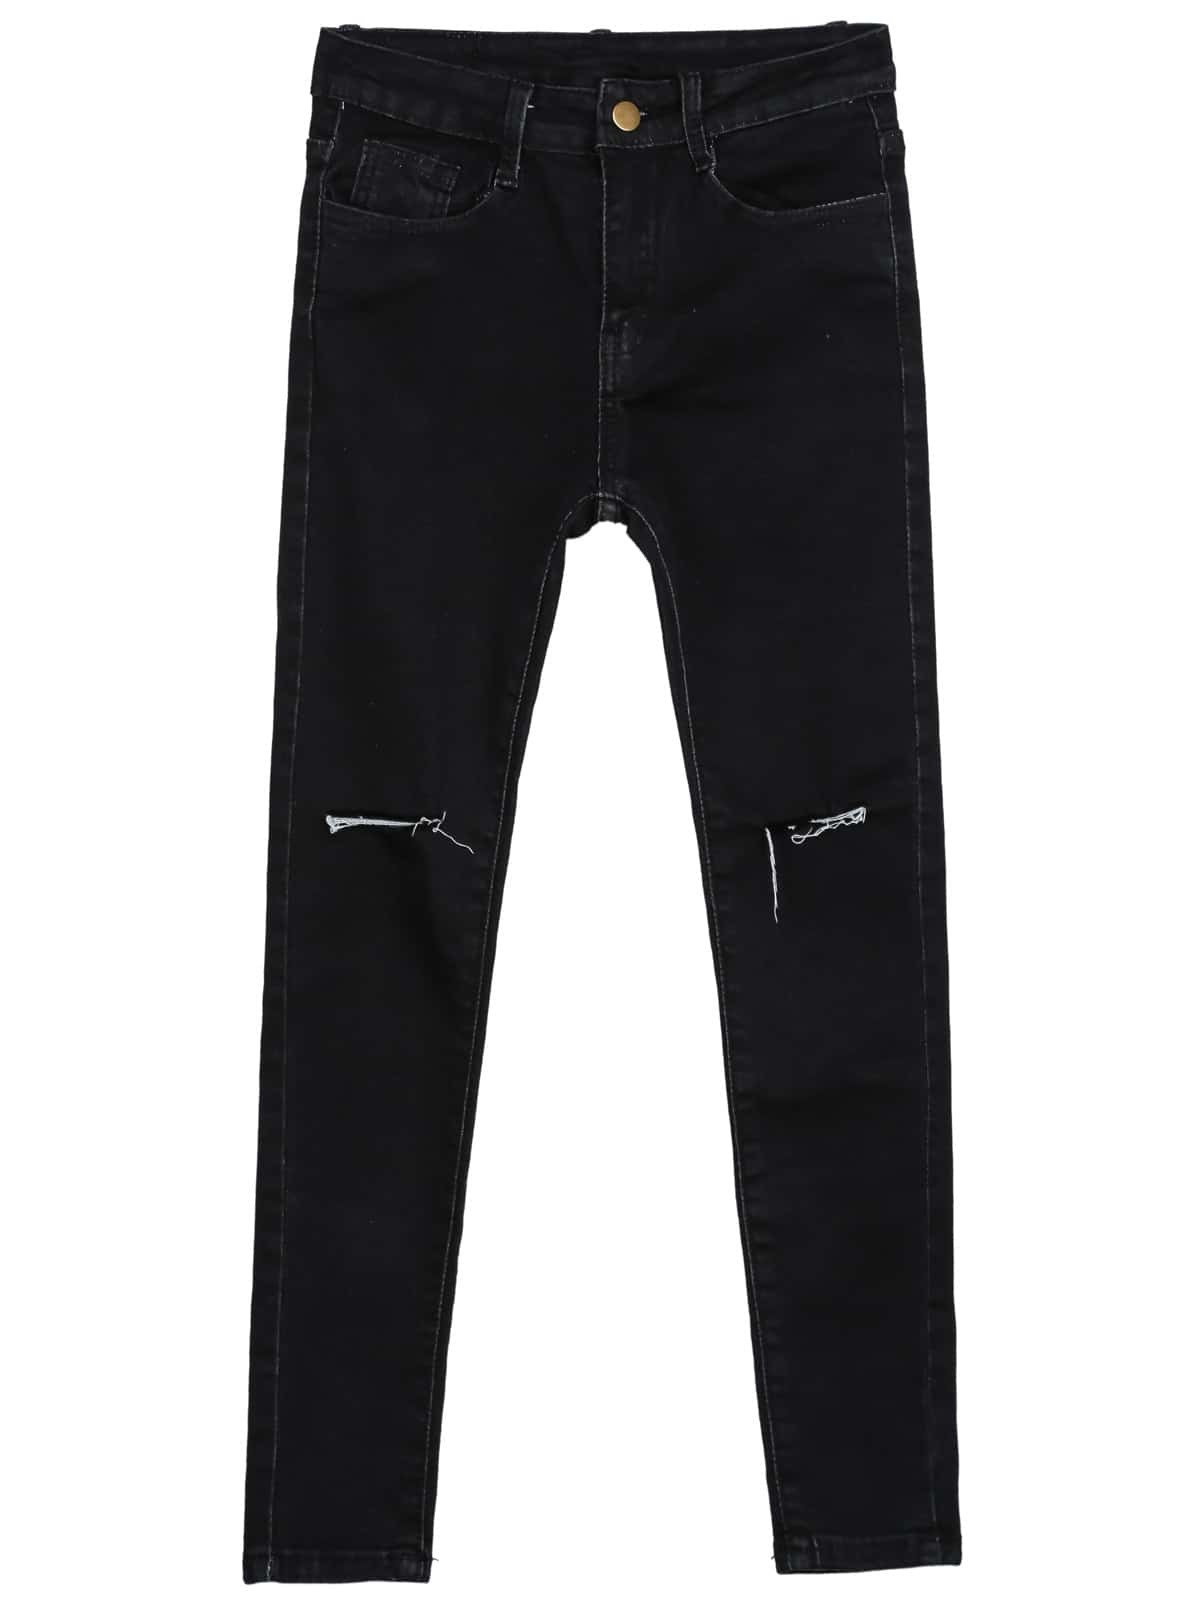 Black Slim Ripped Pockets Denim Pant -SheIn(Sheinside)